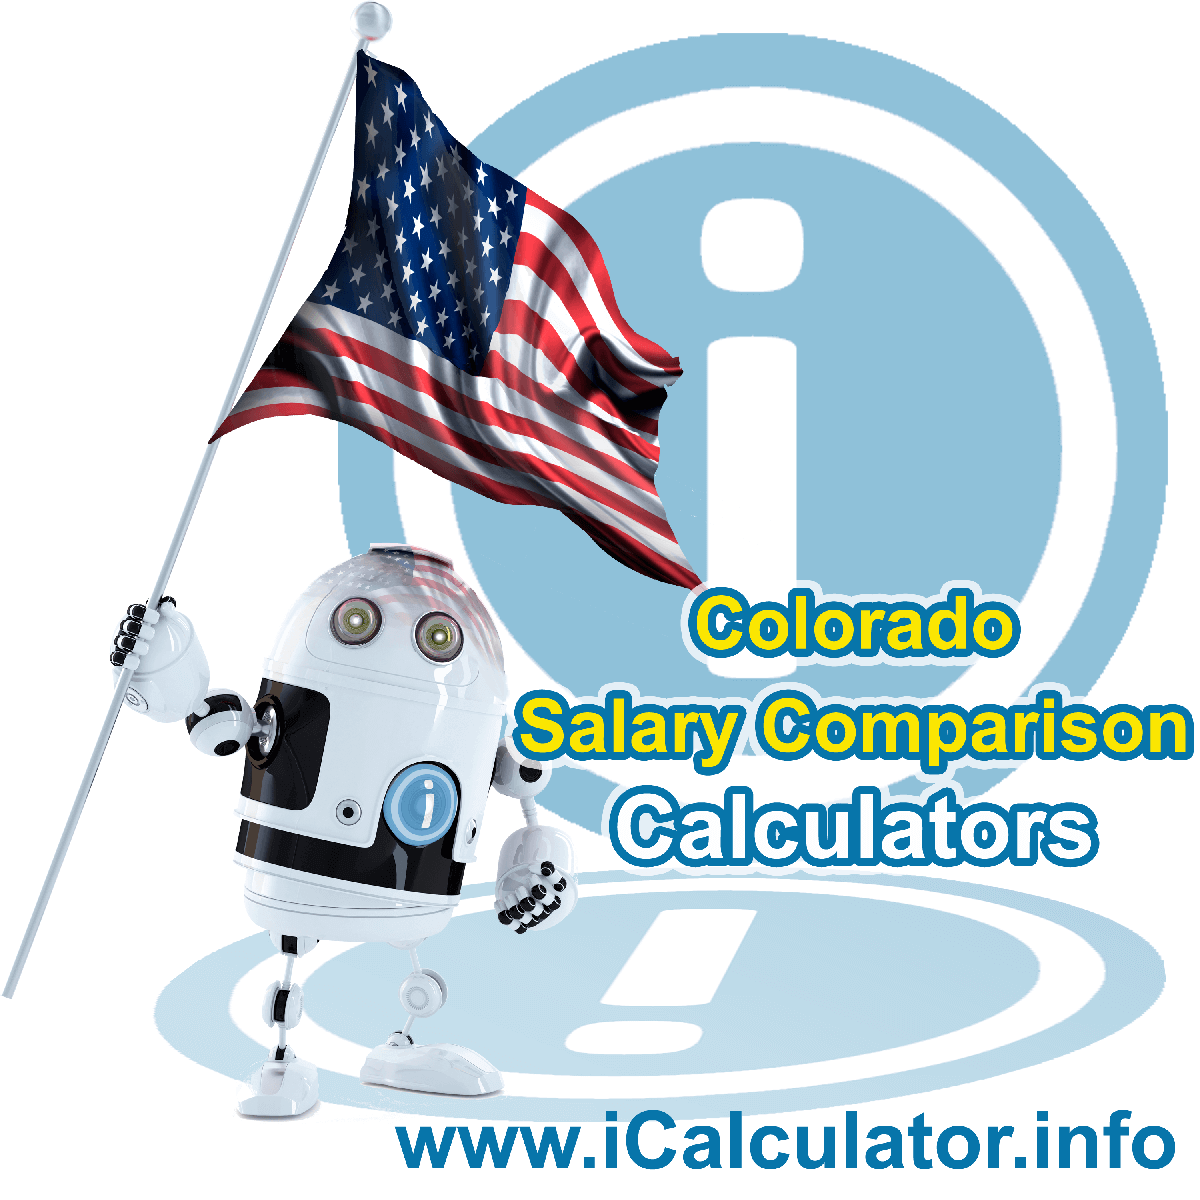 Colorado Salary Comparison Calculator 2020 | iCalculator | The Colorado Salary Comparison Calculator allows you to quickly calculate and compare upto 6 salaries in Colorado or between other states for the 2020 tax year and historical tax years. Its an excellent tool for jobseekers, pay raise comparison and comparison of salaries between different US States